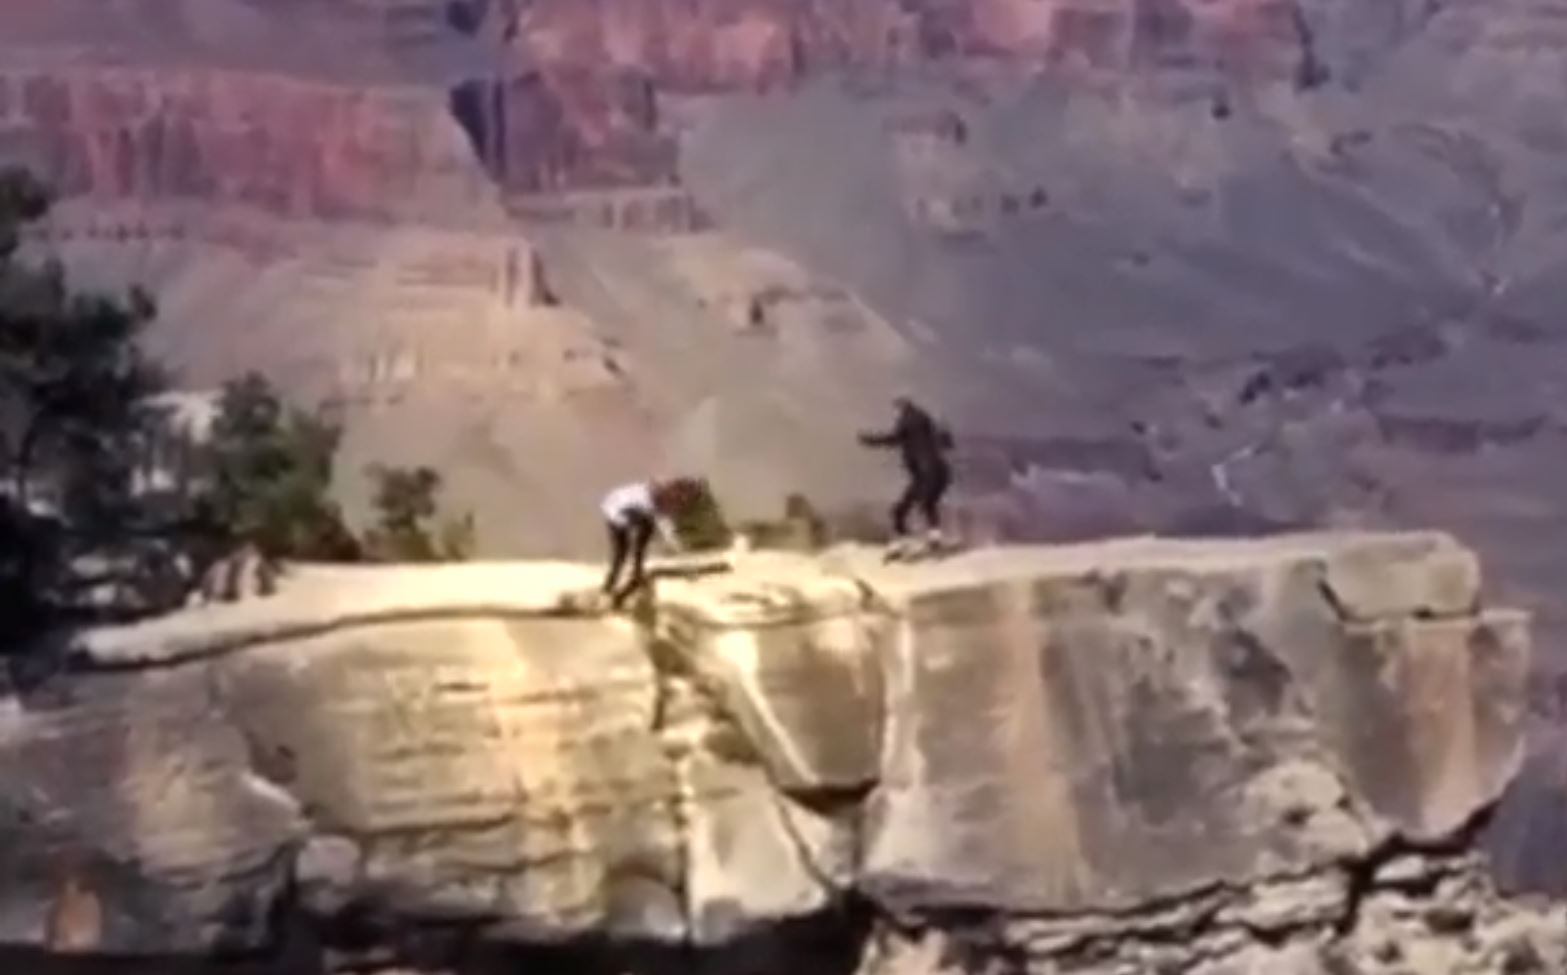 Near Fall Caught On Video Is A Shocking Reminder Of Safety